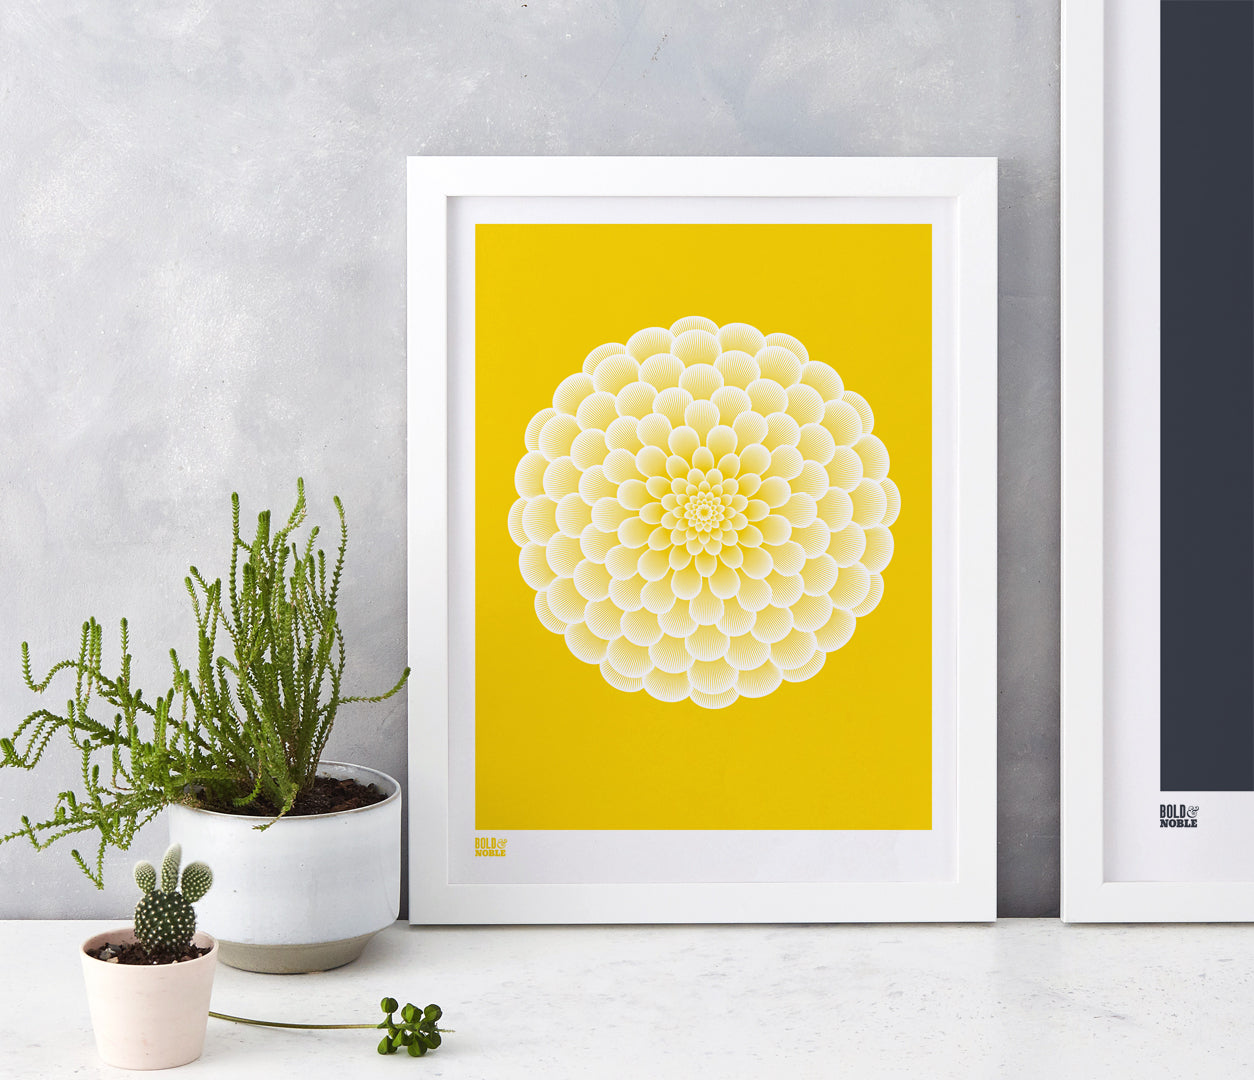 Wall Art ideas: Economical Screen Prints, Dahlia Pompon in bright yellow